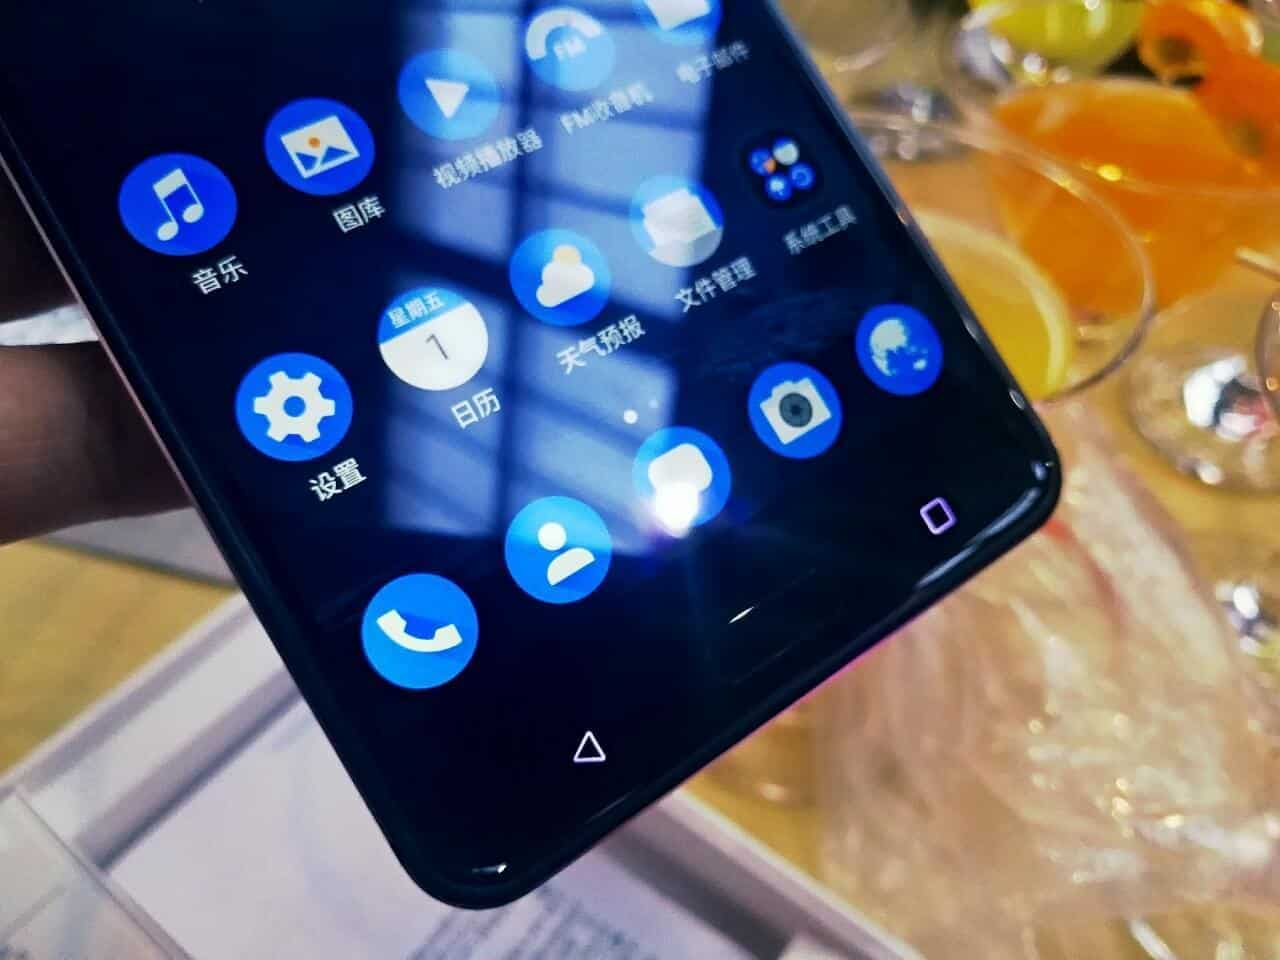 Nokia 6 third party unboxing video image 7